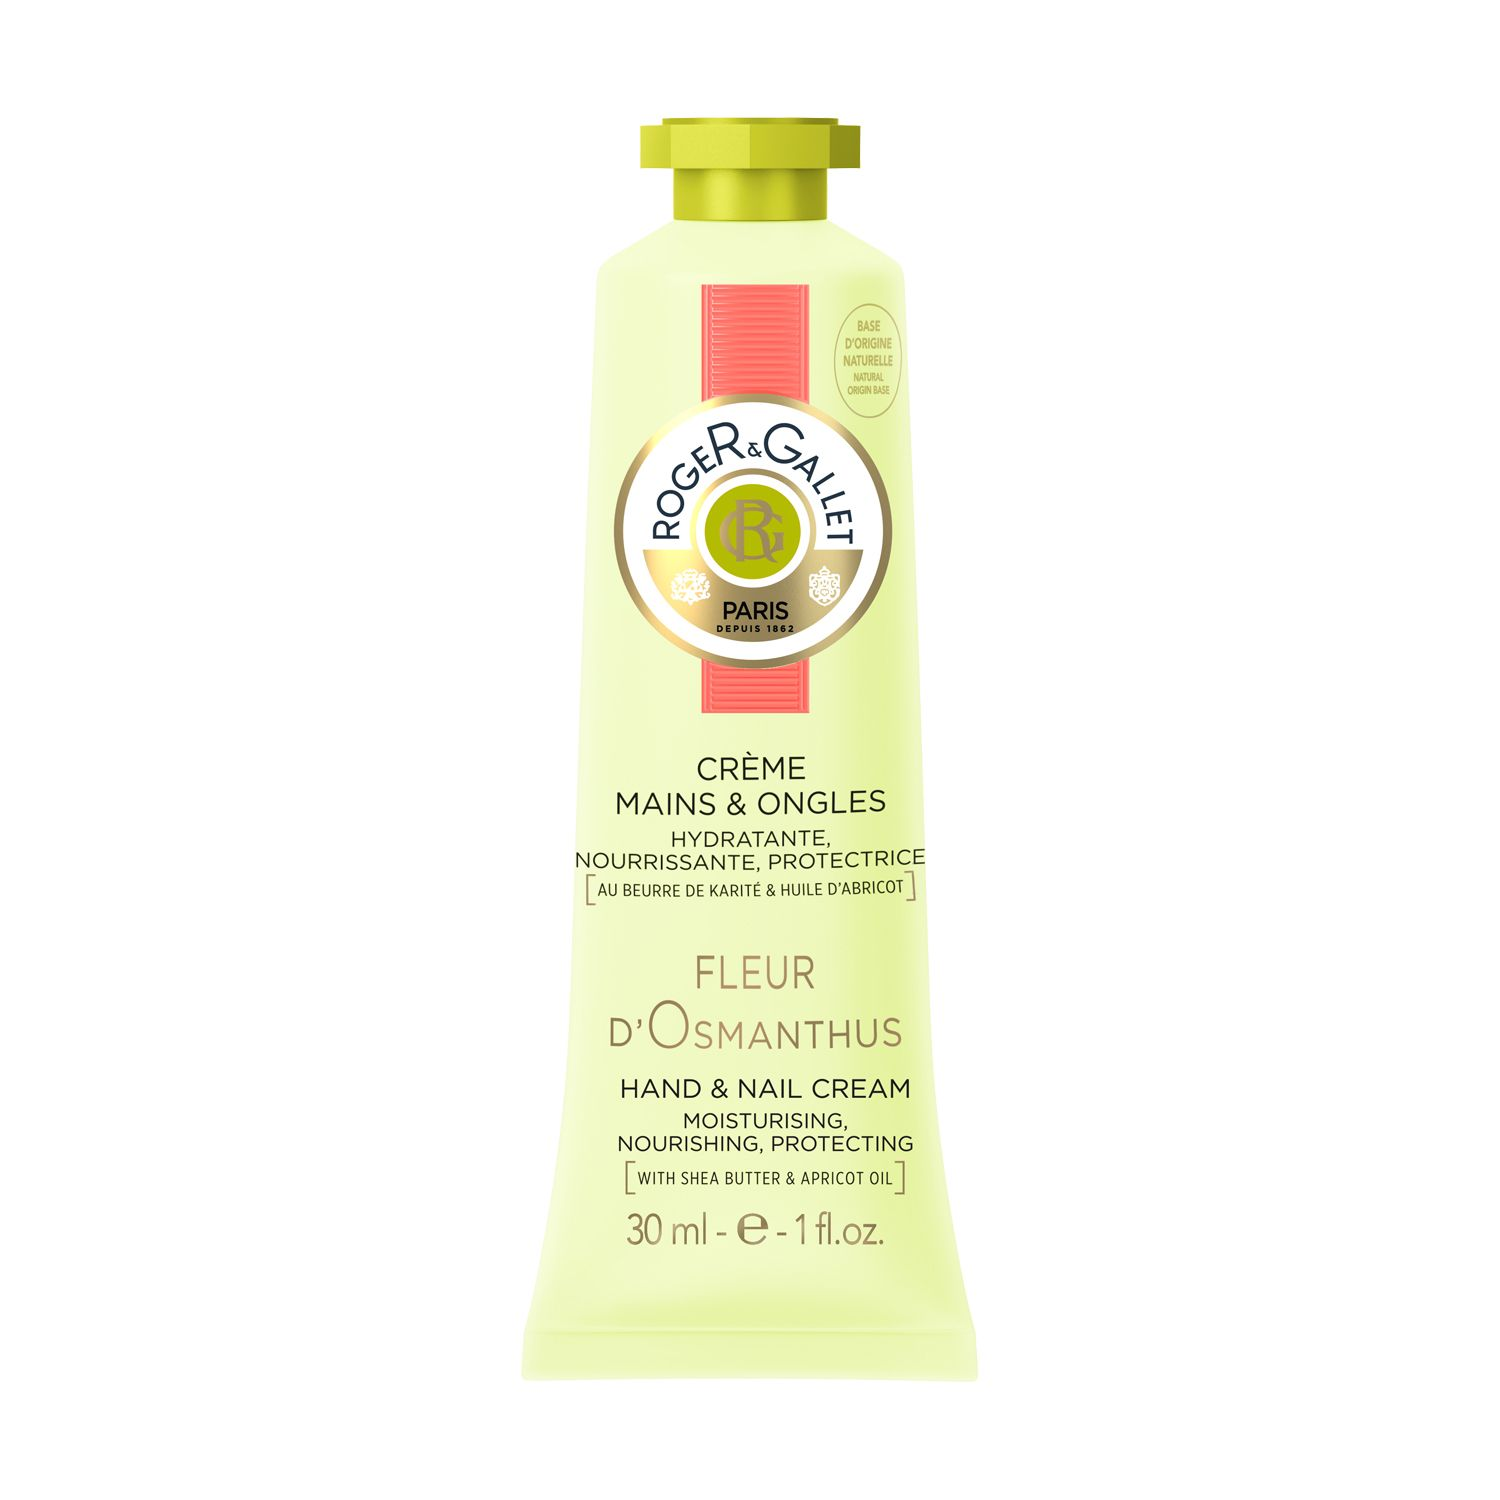 Roger & Gallet Fleur d`Osmanthus Hand & Nail Cream 30ml